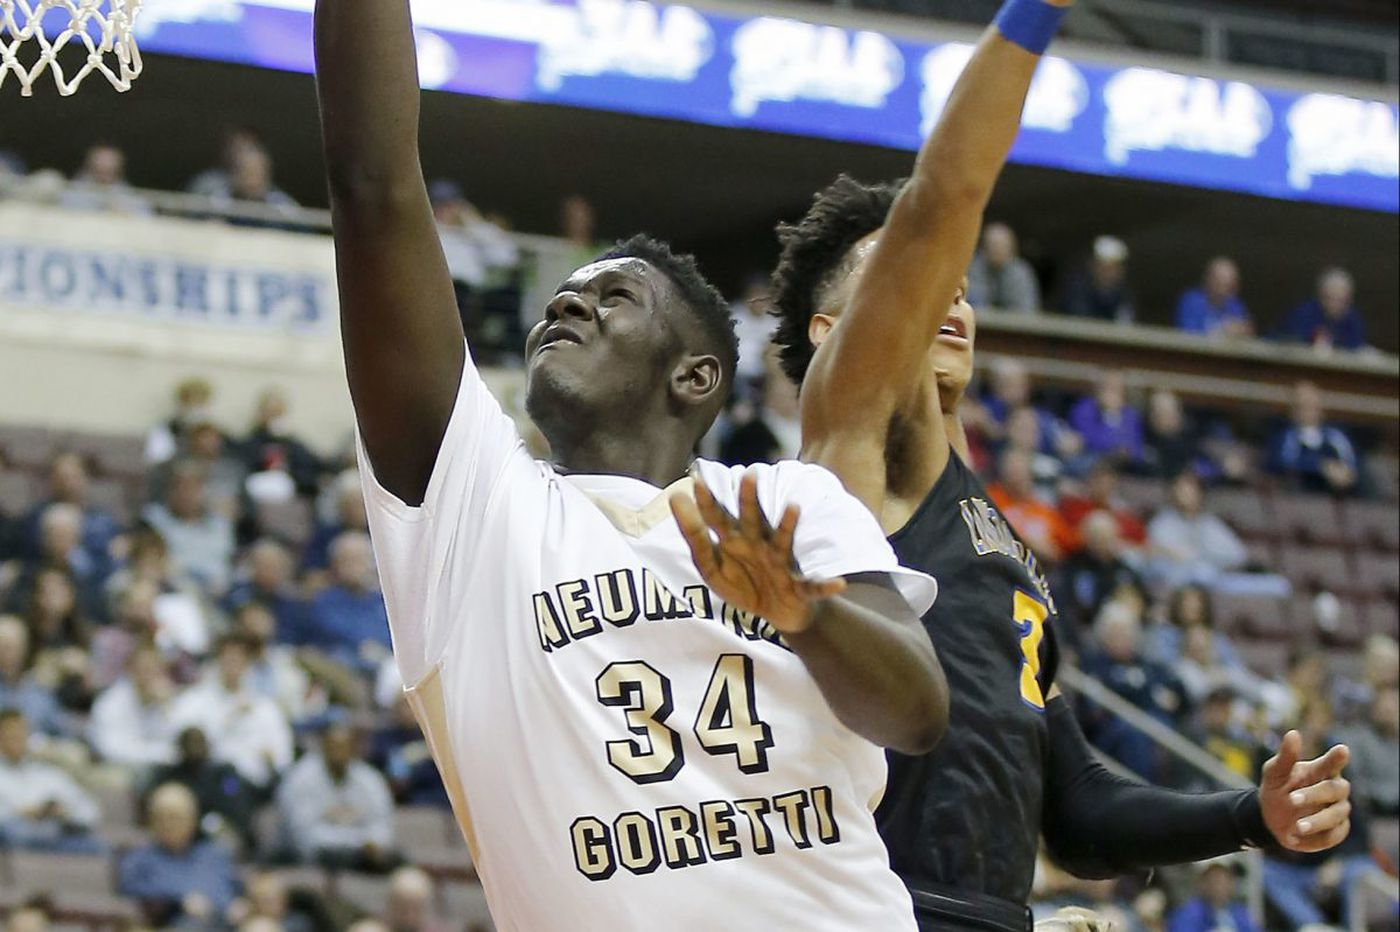 Sunday's Pa. roundup: Neumann-Goretti boys' basketball outlasts Father Judge in overtime